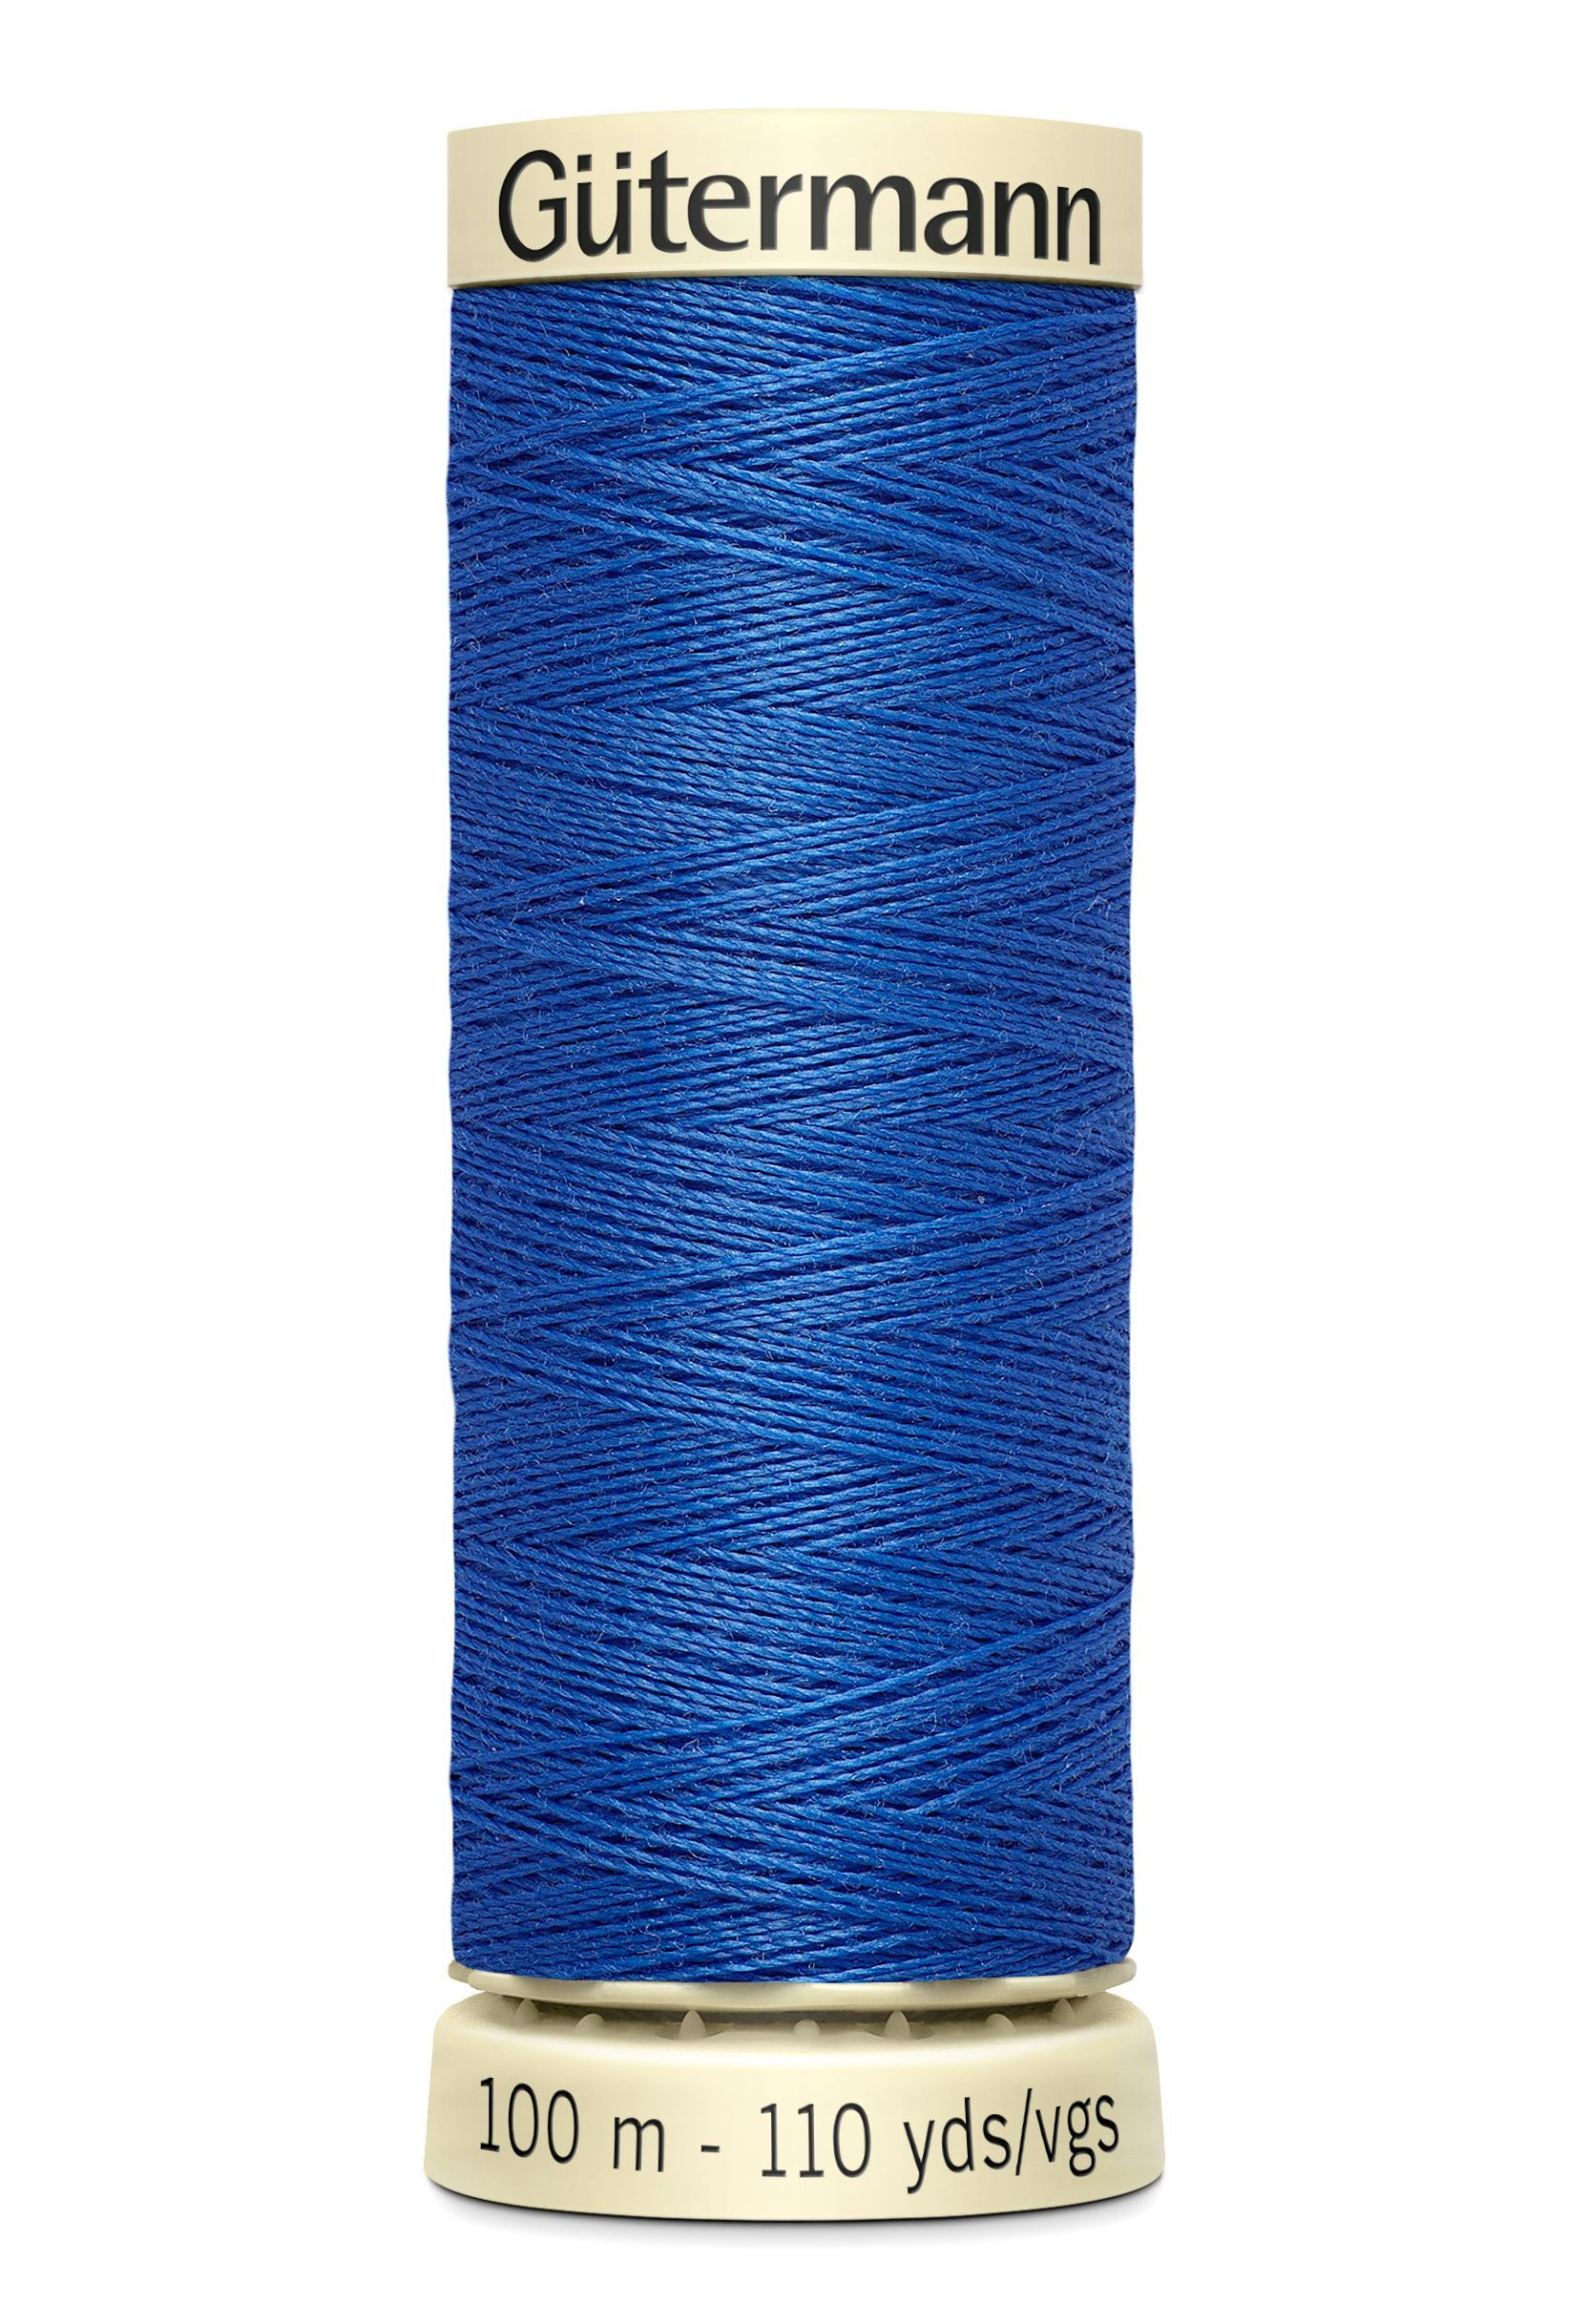 Colour 959 Gutermann 100m Sew-All Polyester Sewing Thread